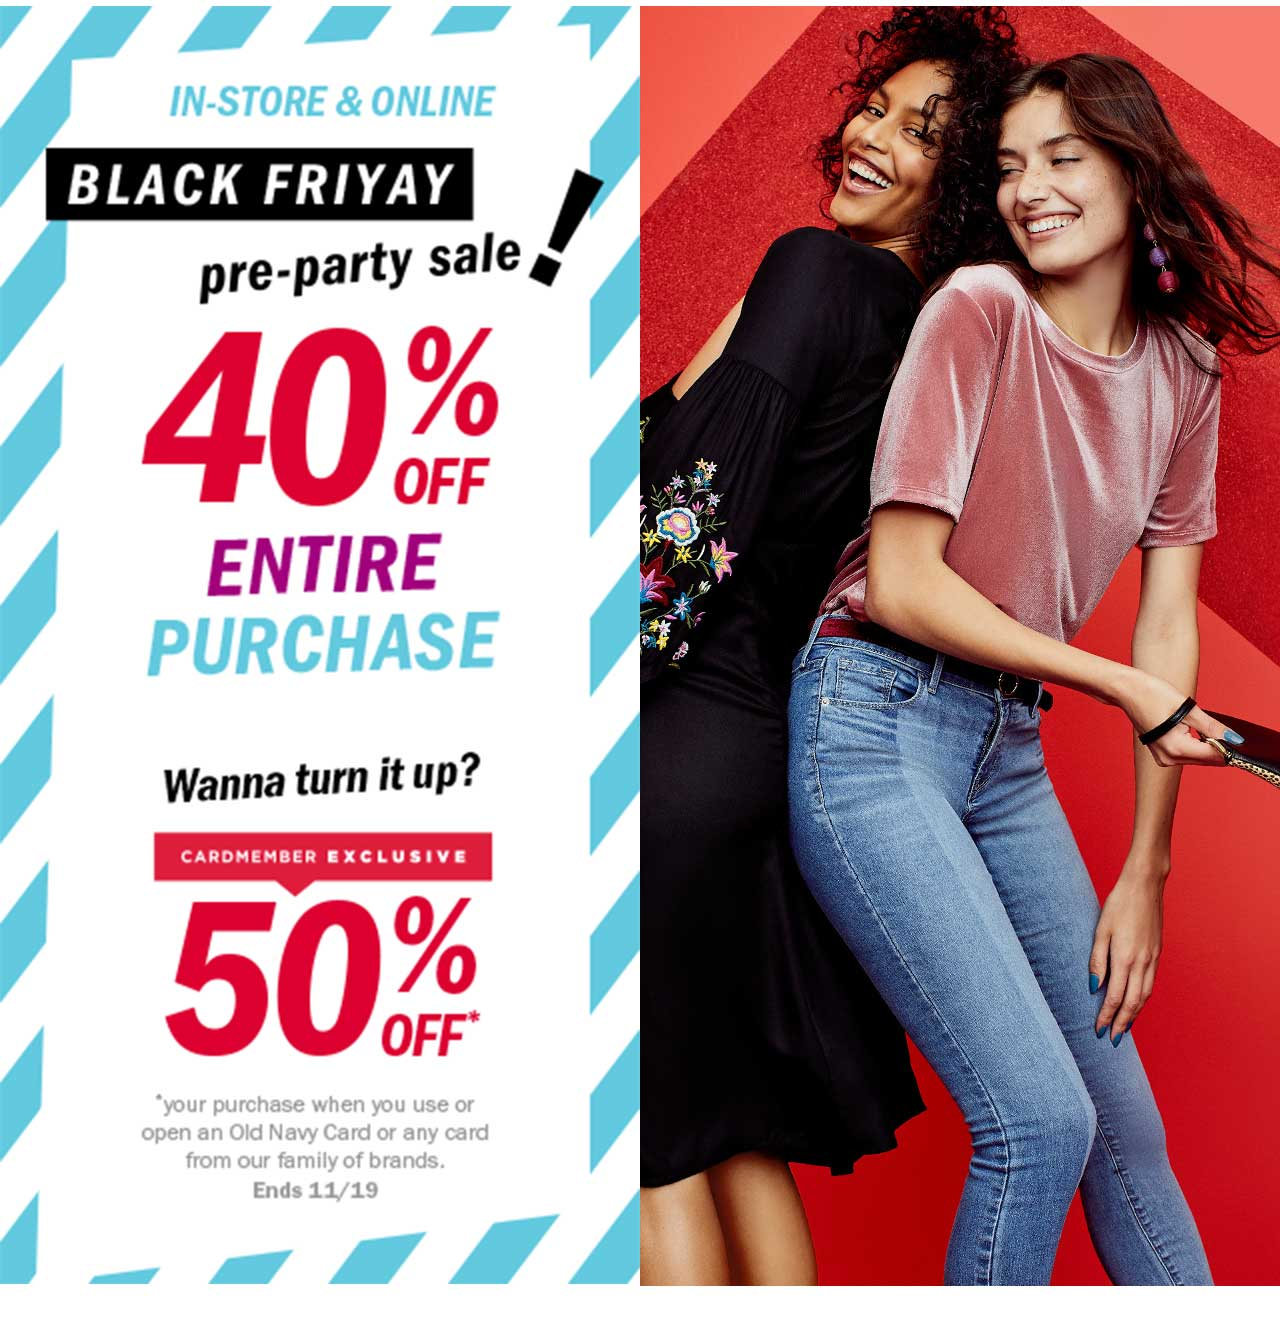 Old Navy: 🔵 You just nabbed 40% OFF your ENTIRE purchase during the ...